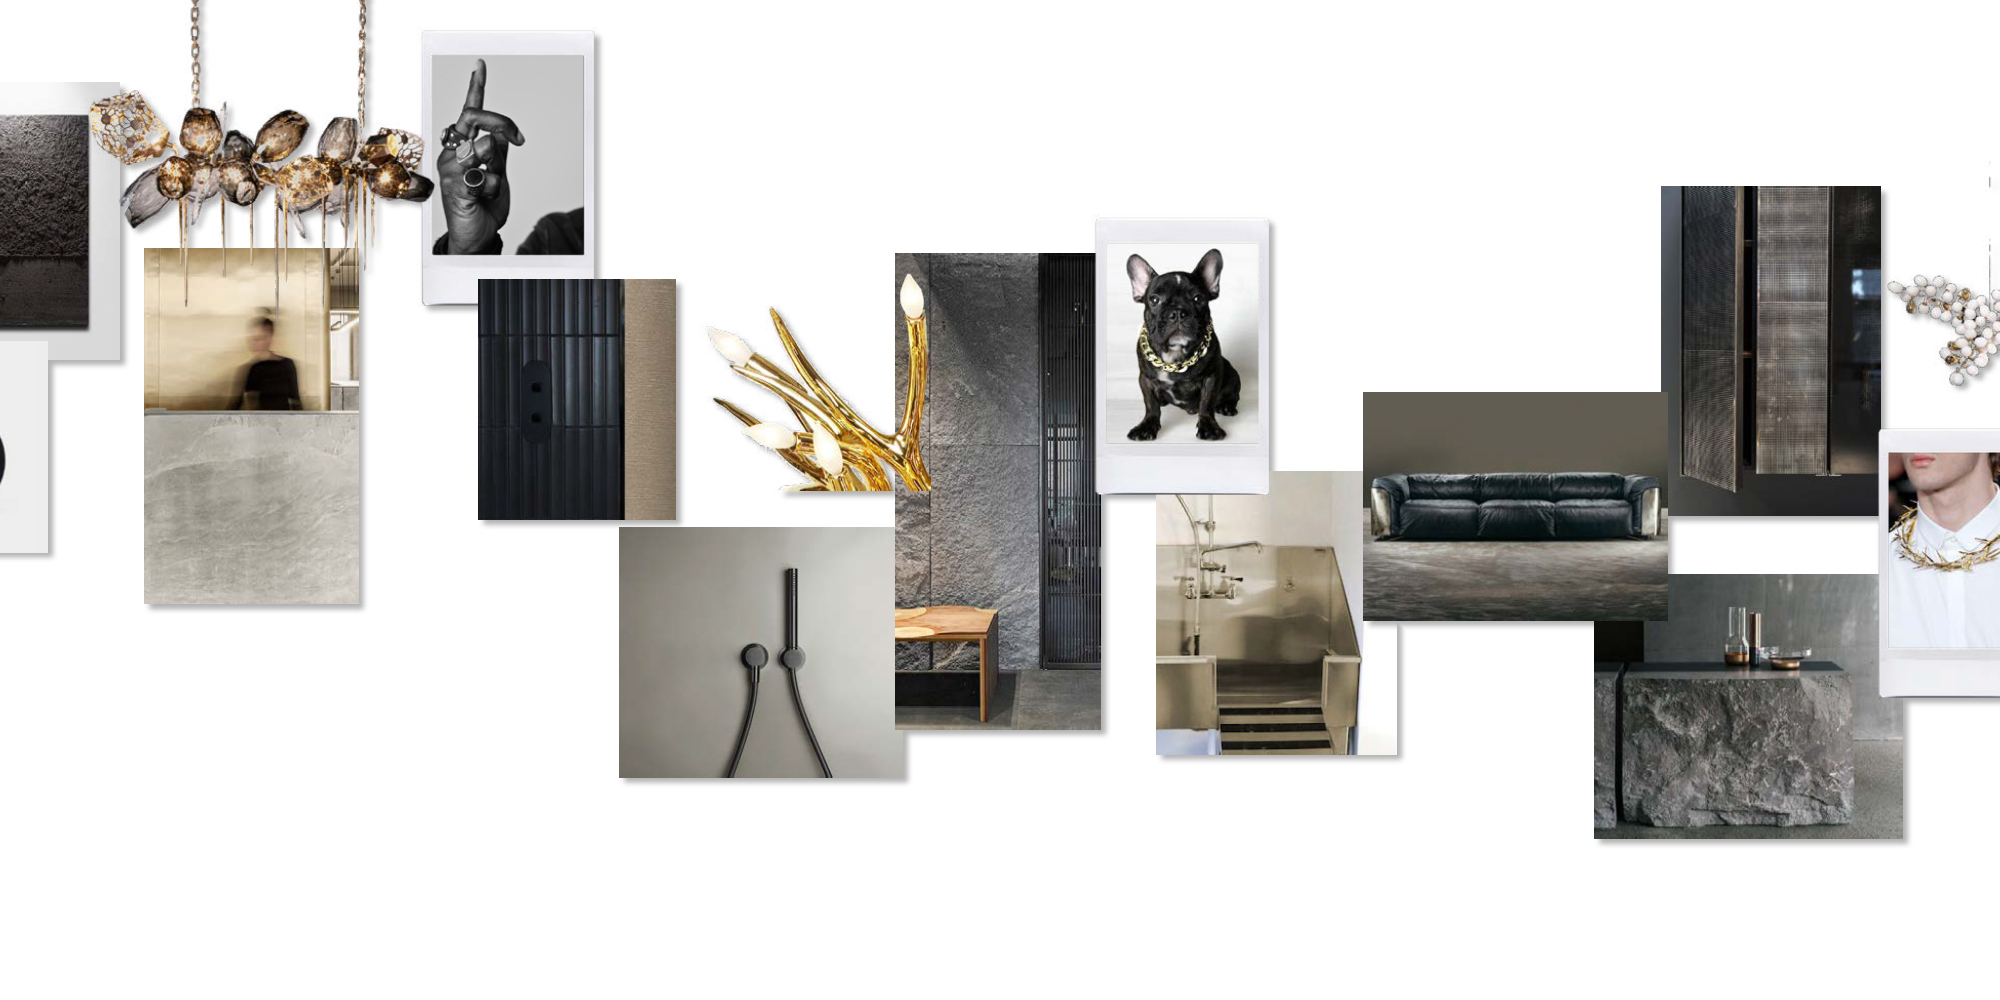 Fusing black and gold with a rock edge, the residences at 120 Church embody urban dynamism.